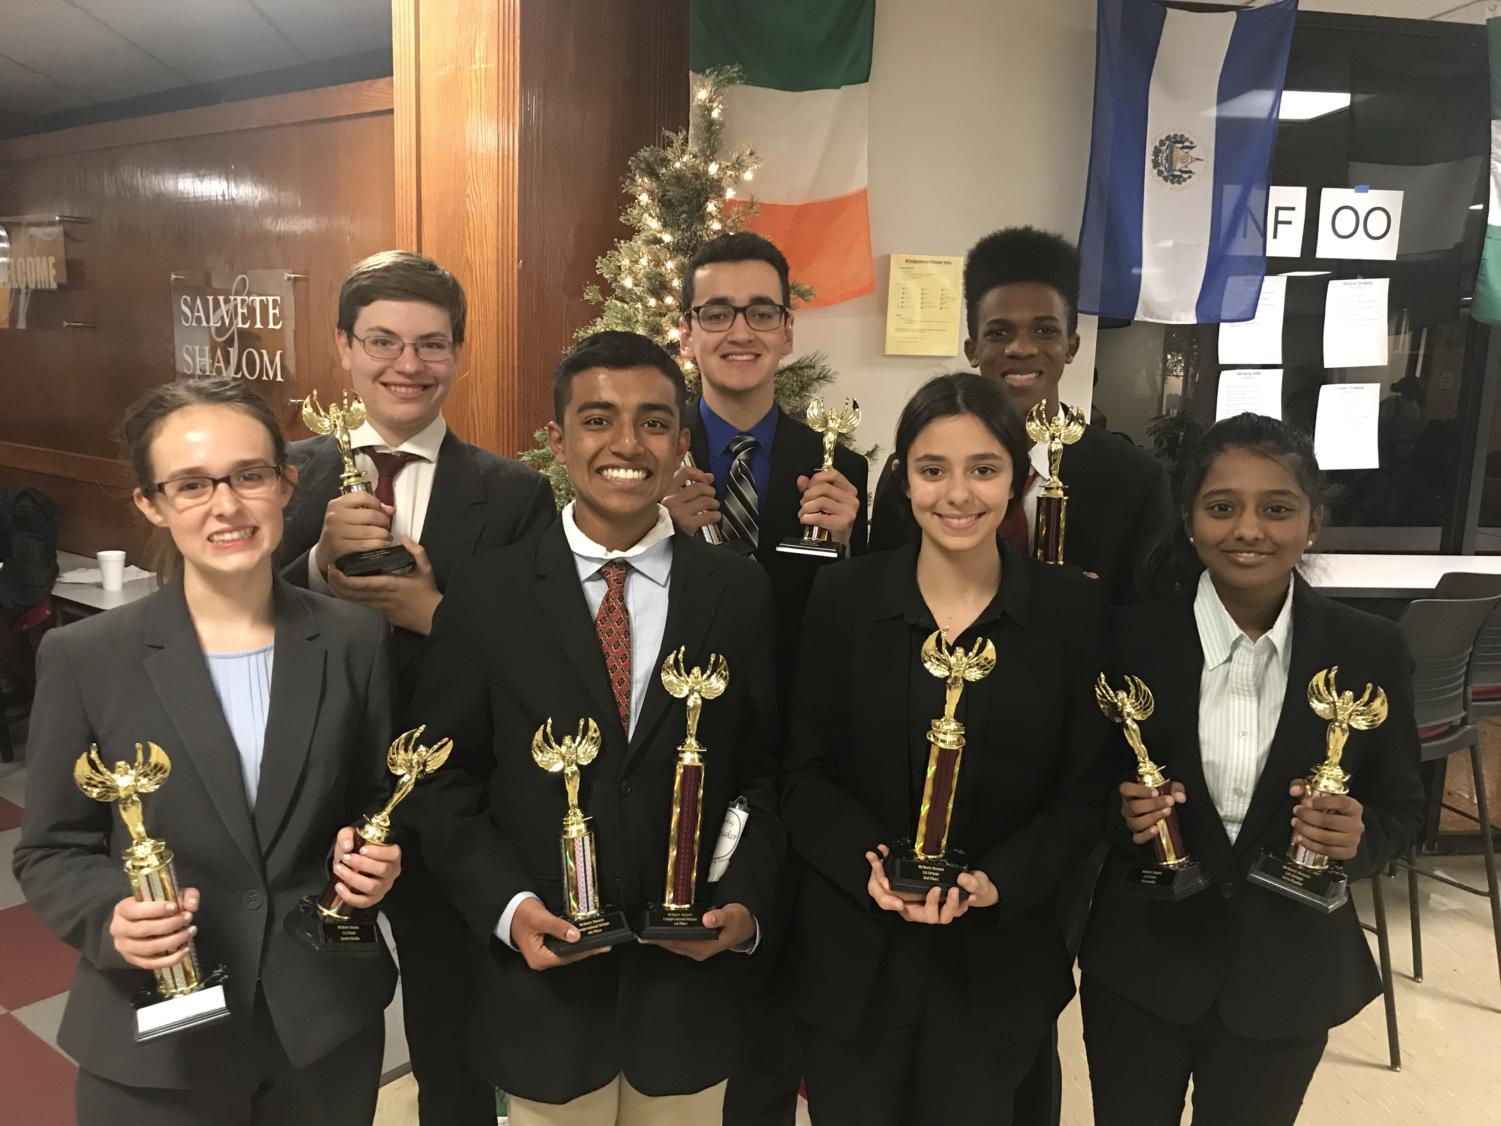 The Debate team holds their awards earned Nov. 30-Dec. 12. For full details on who won what continue reading this edition of the